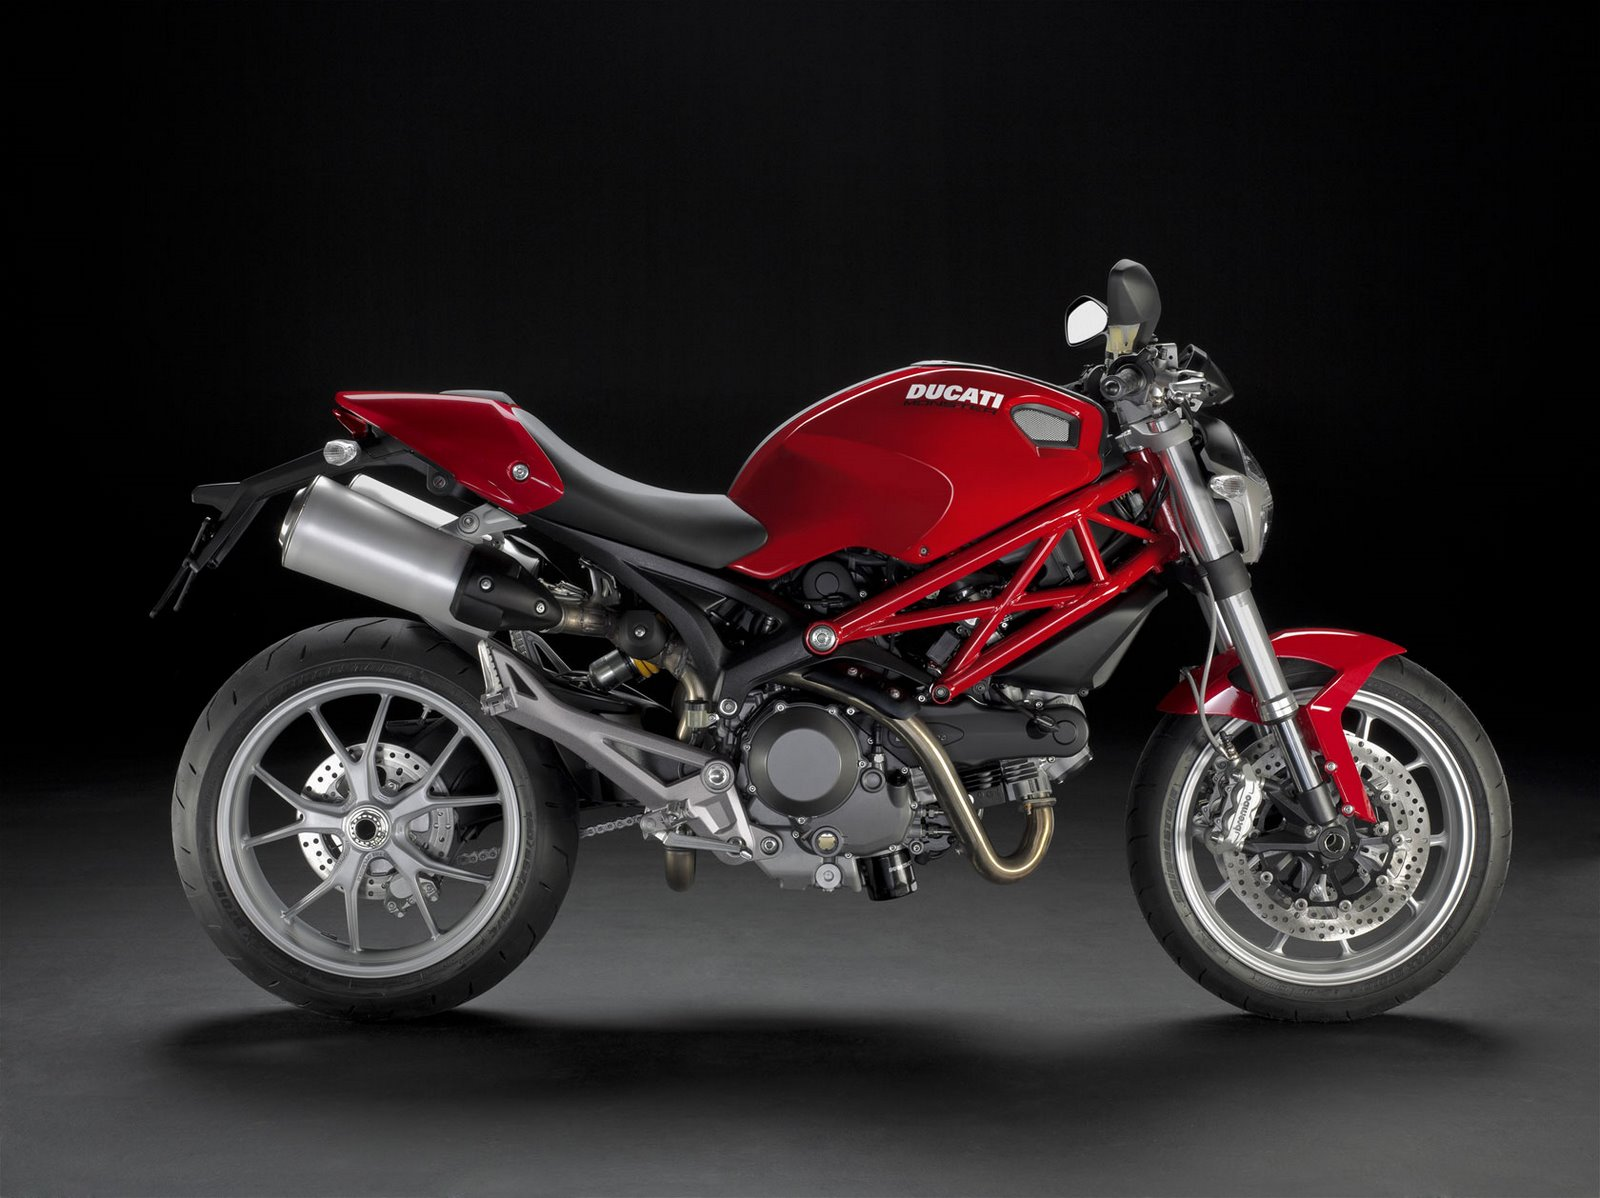 2009 ducati monster 1100 motorcycle photo of the day. Black Bedroom Furniture Sets. Home Design Ideas